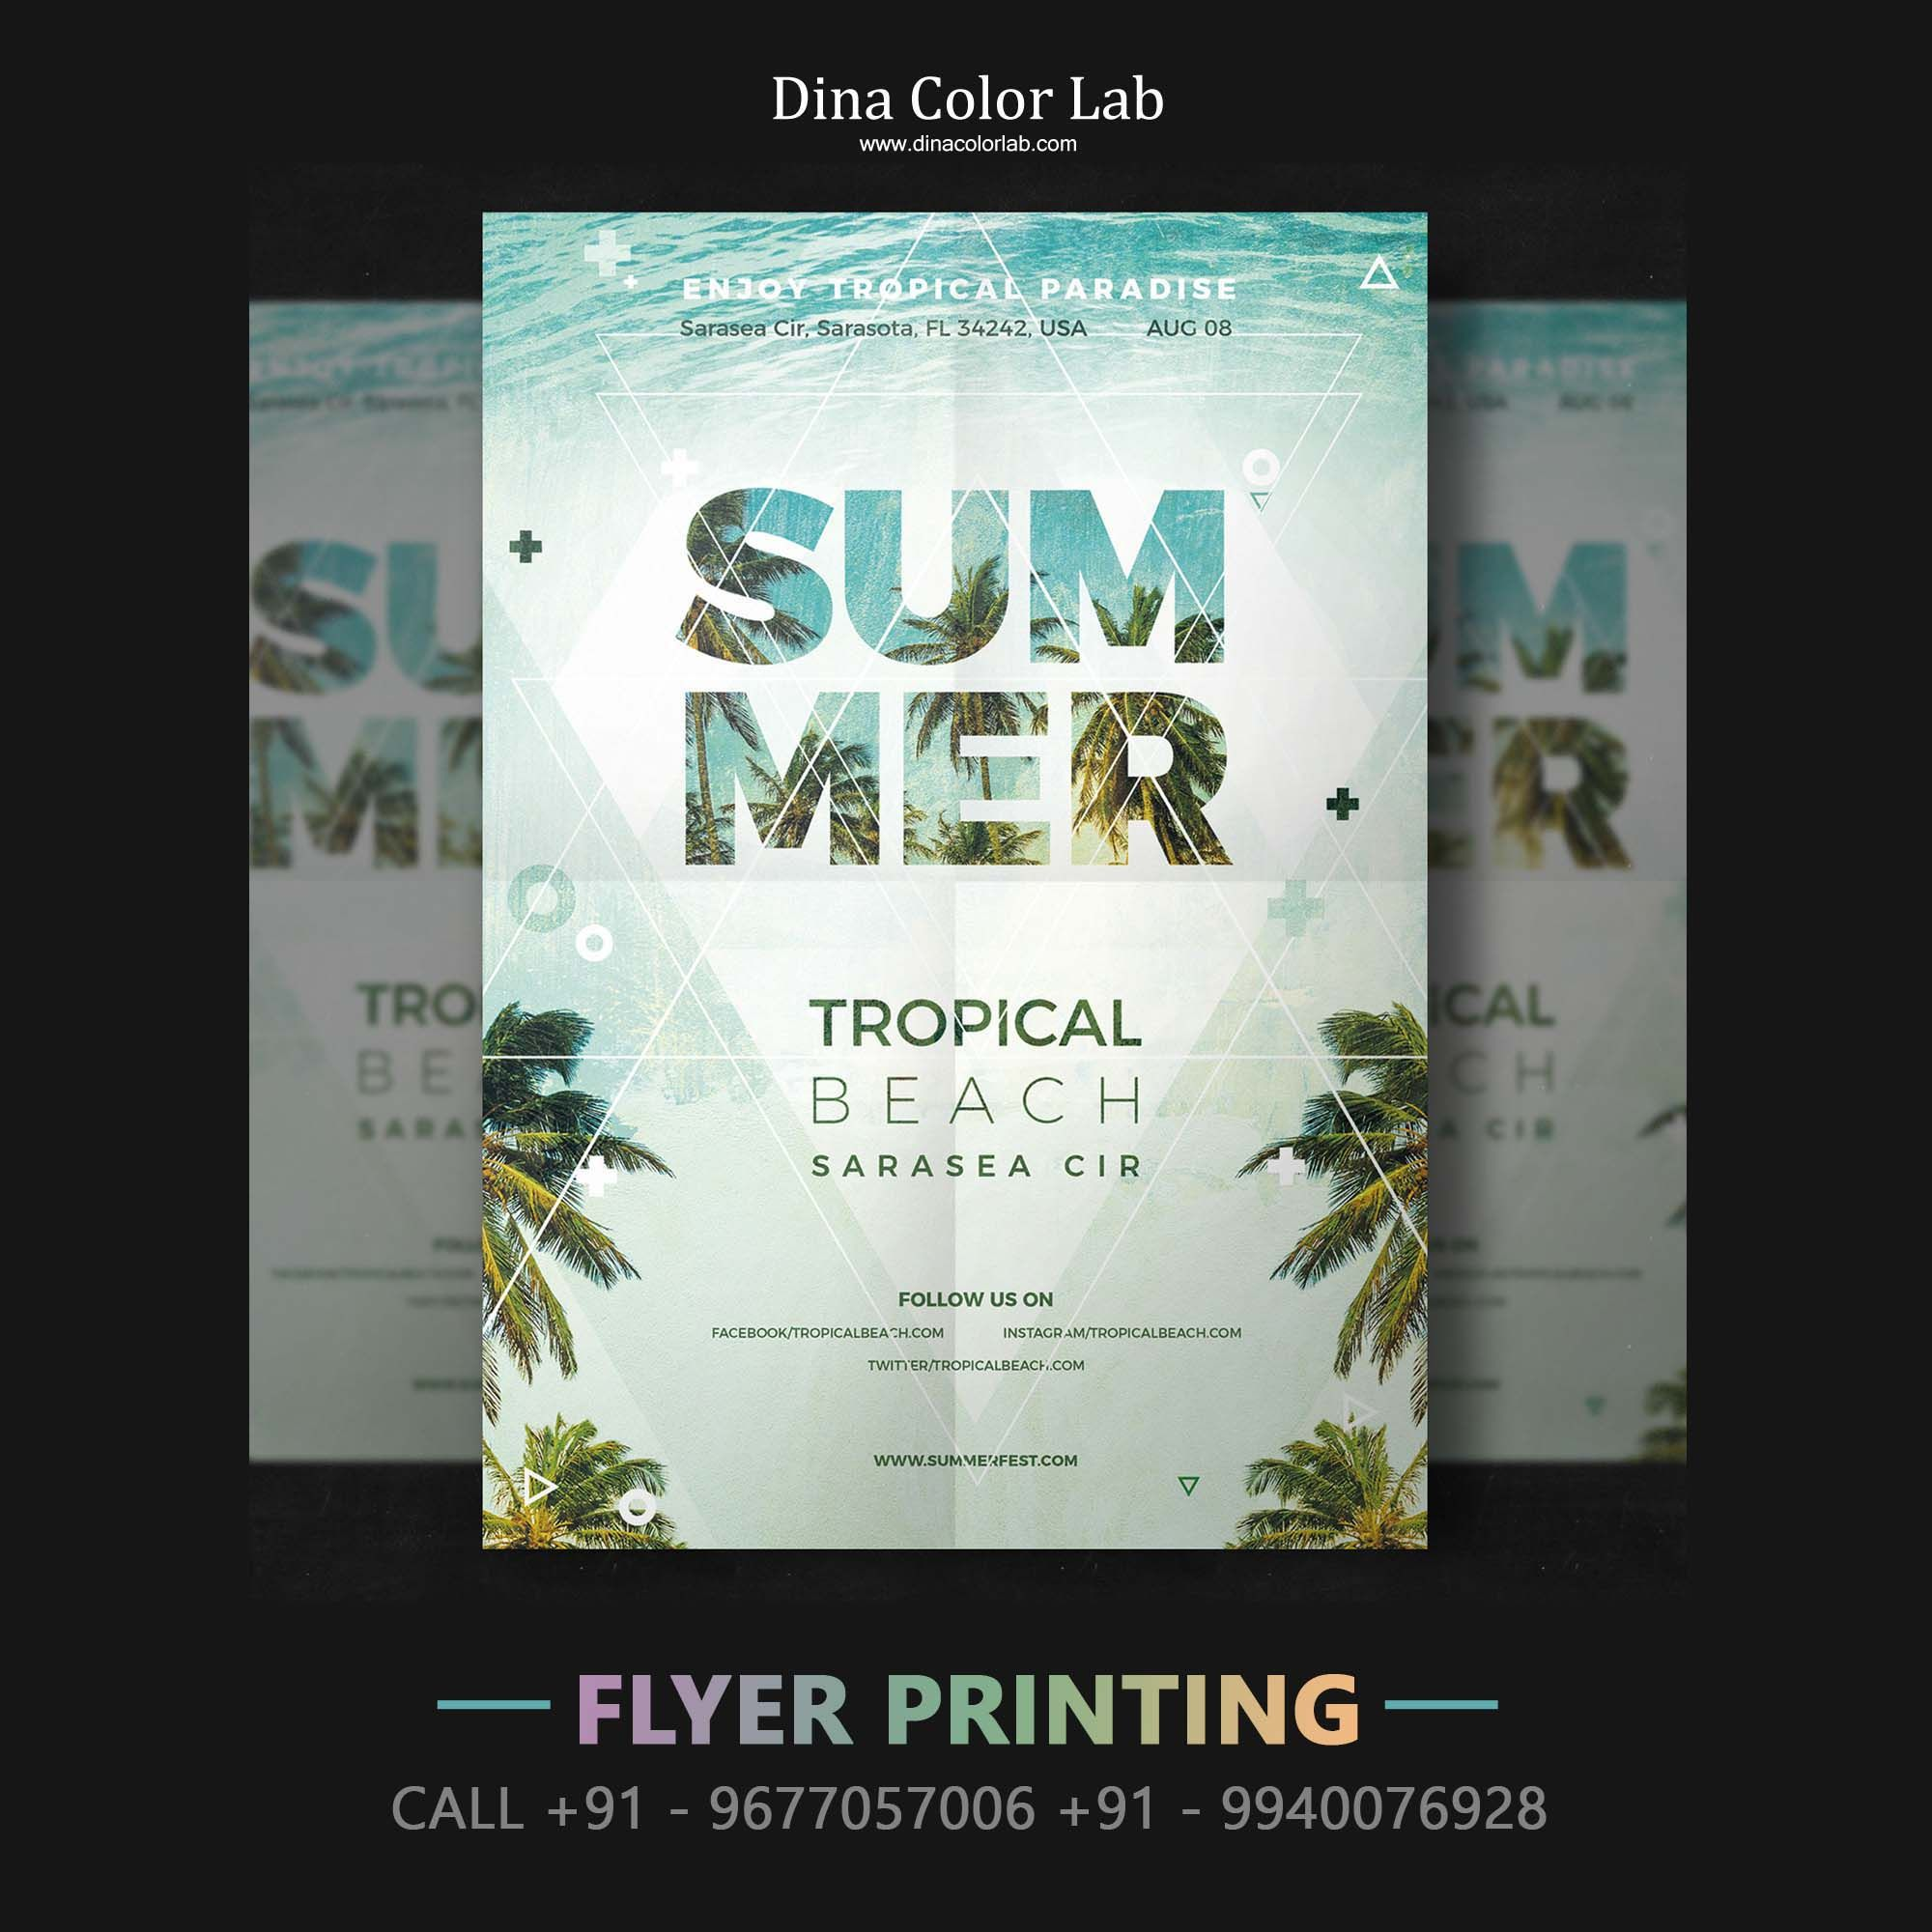 Professional Printing Company Provide Quality Flyer